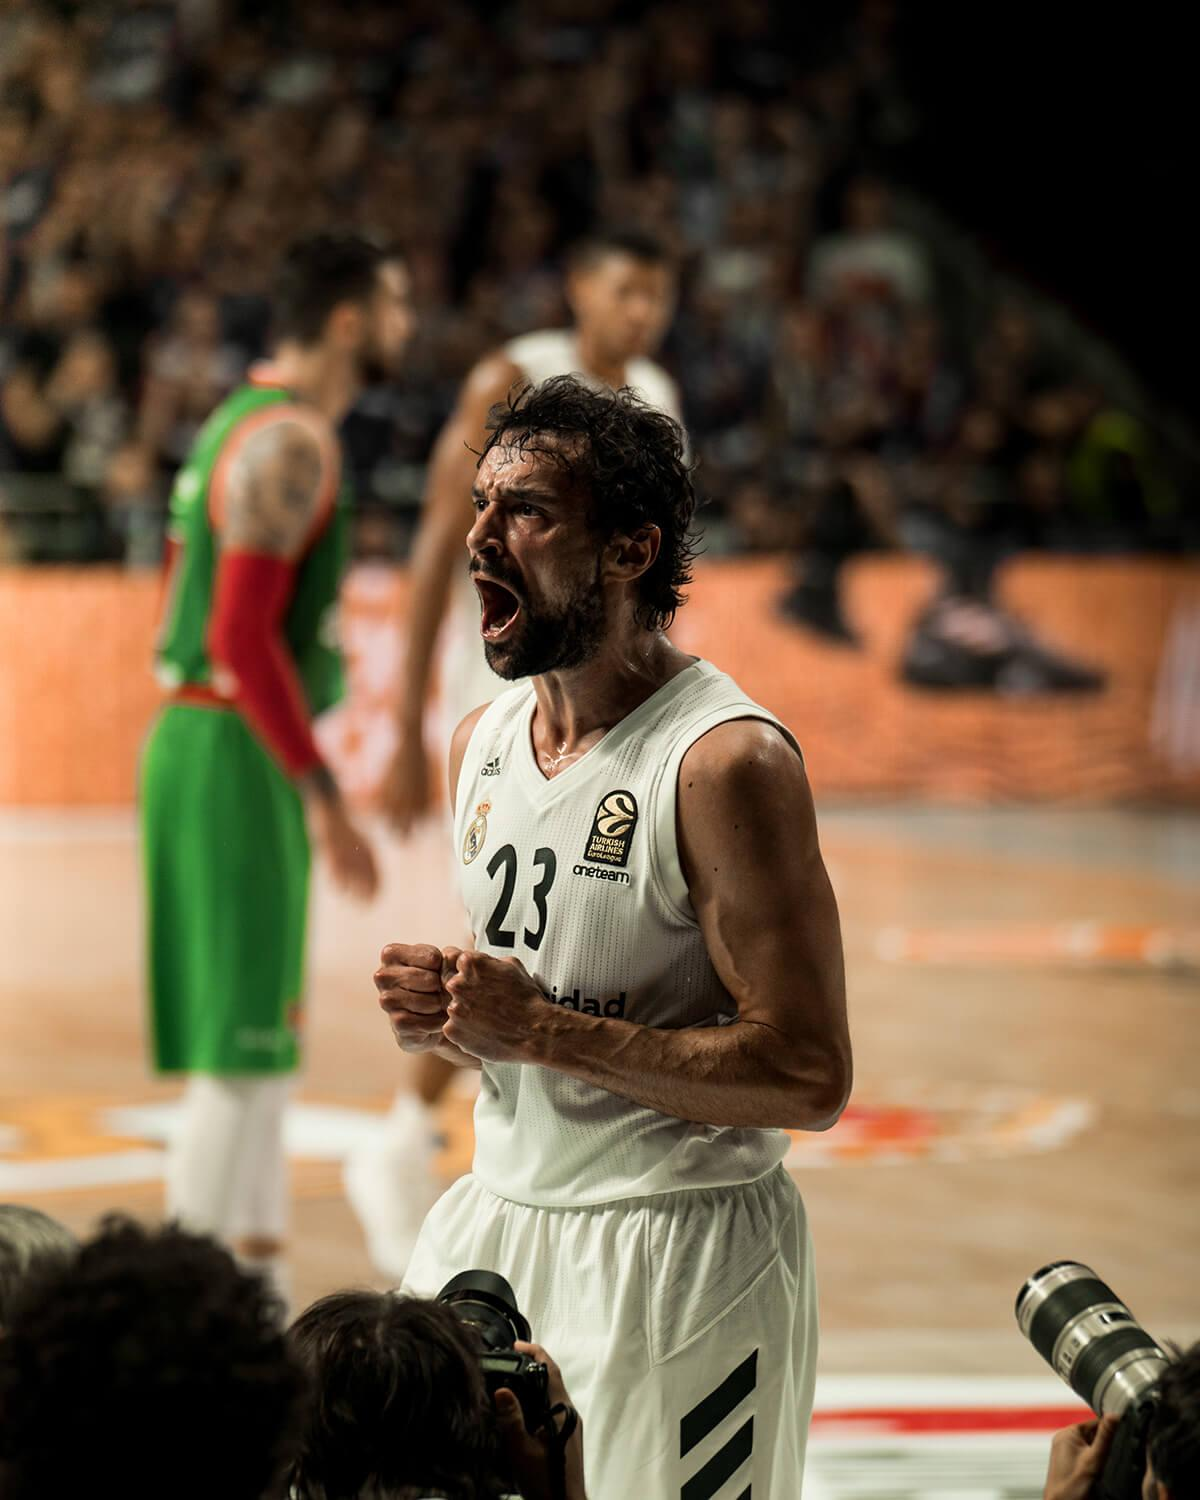 Real Madrid VS Baskonia – Llull 3